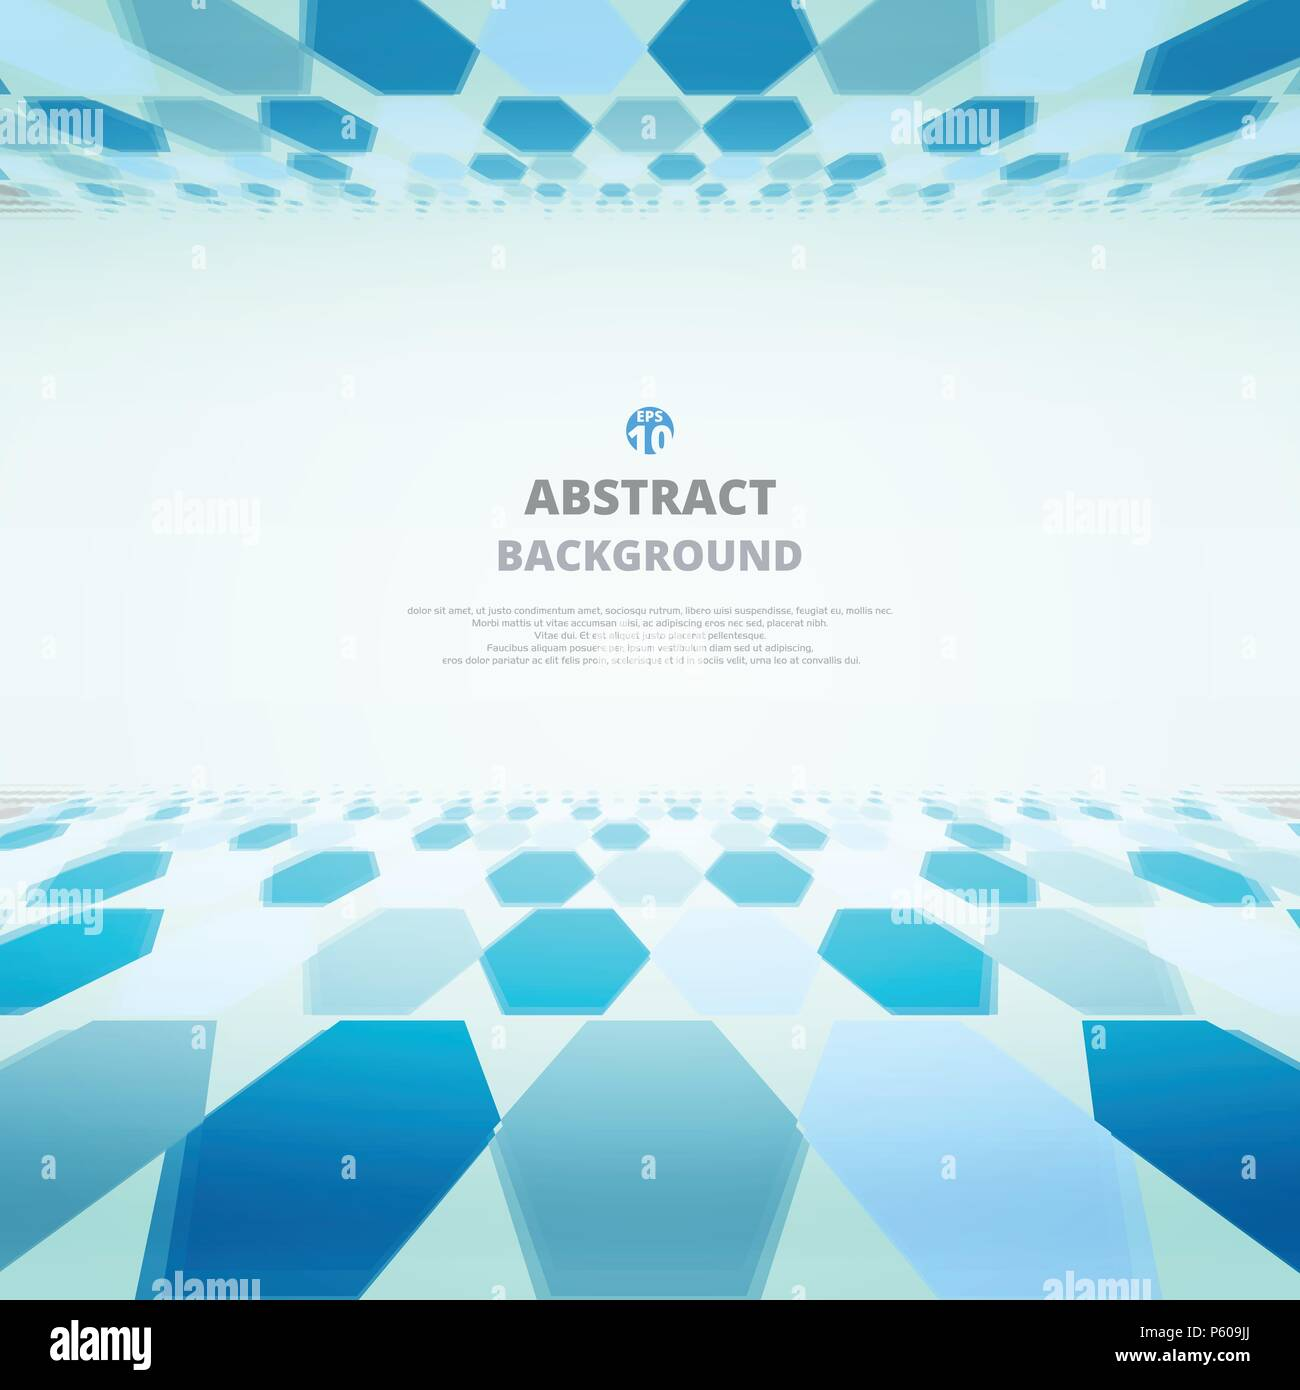 Art of blue molecules abstract background for business presentation. Illustration eps10 - Stock Image